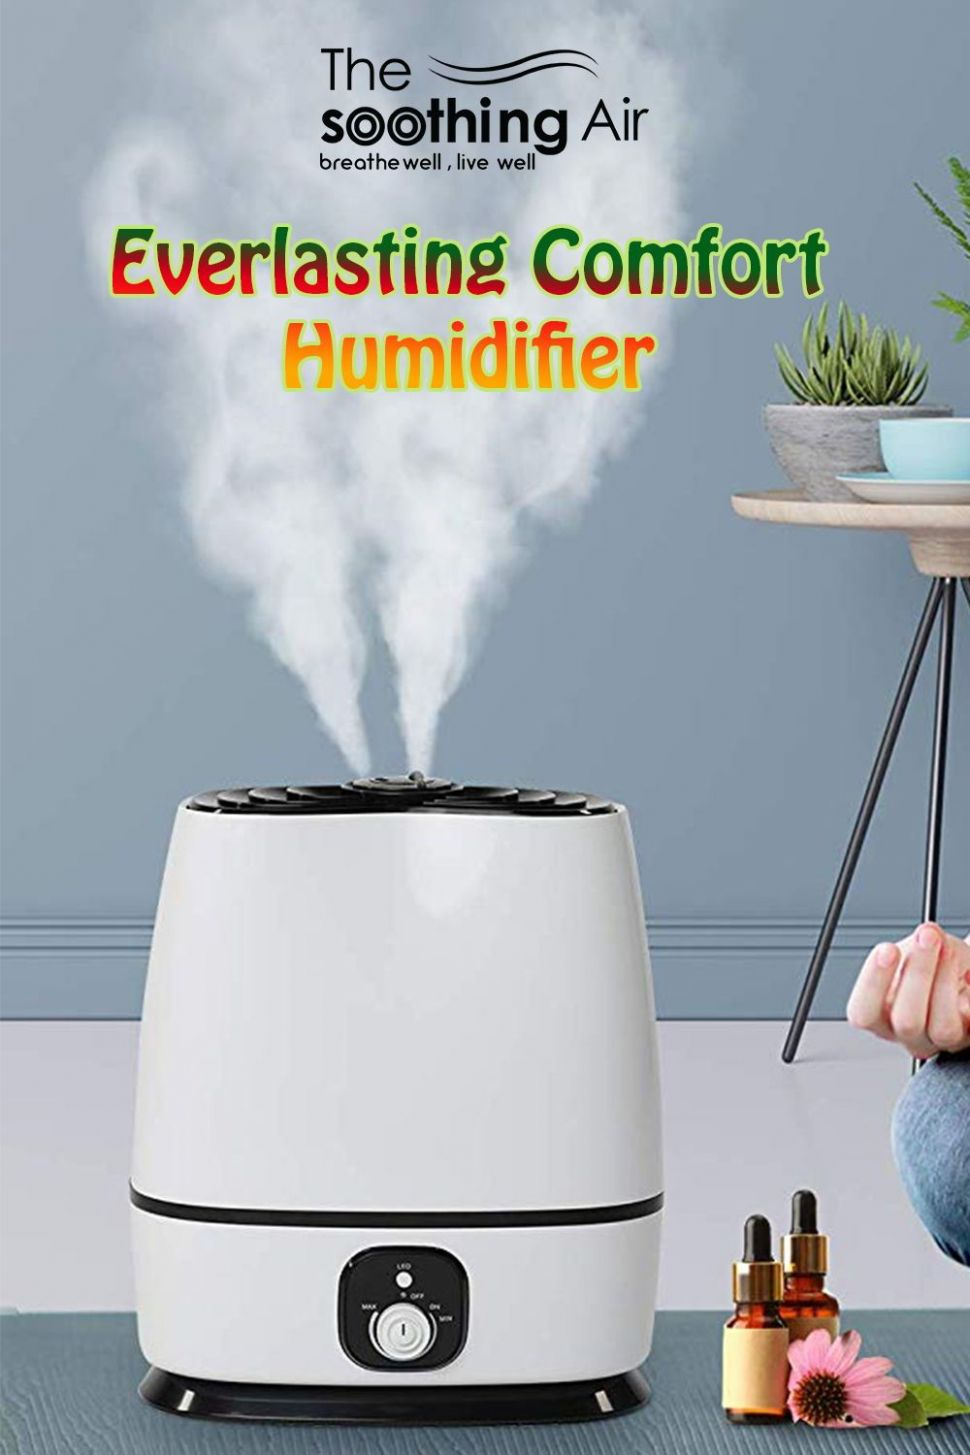 Top 9 Baby Room Humidifiers (April 9): Reviews & Buyers Guide ..